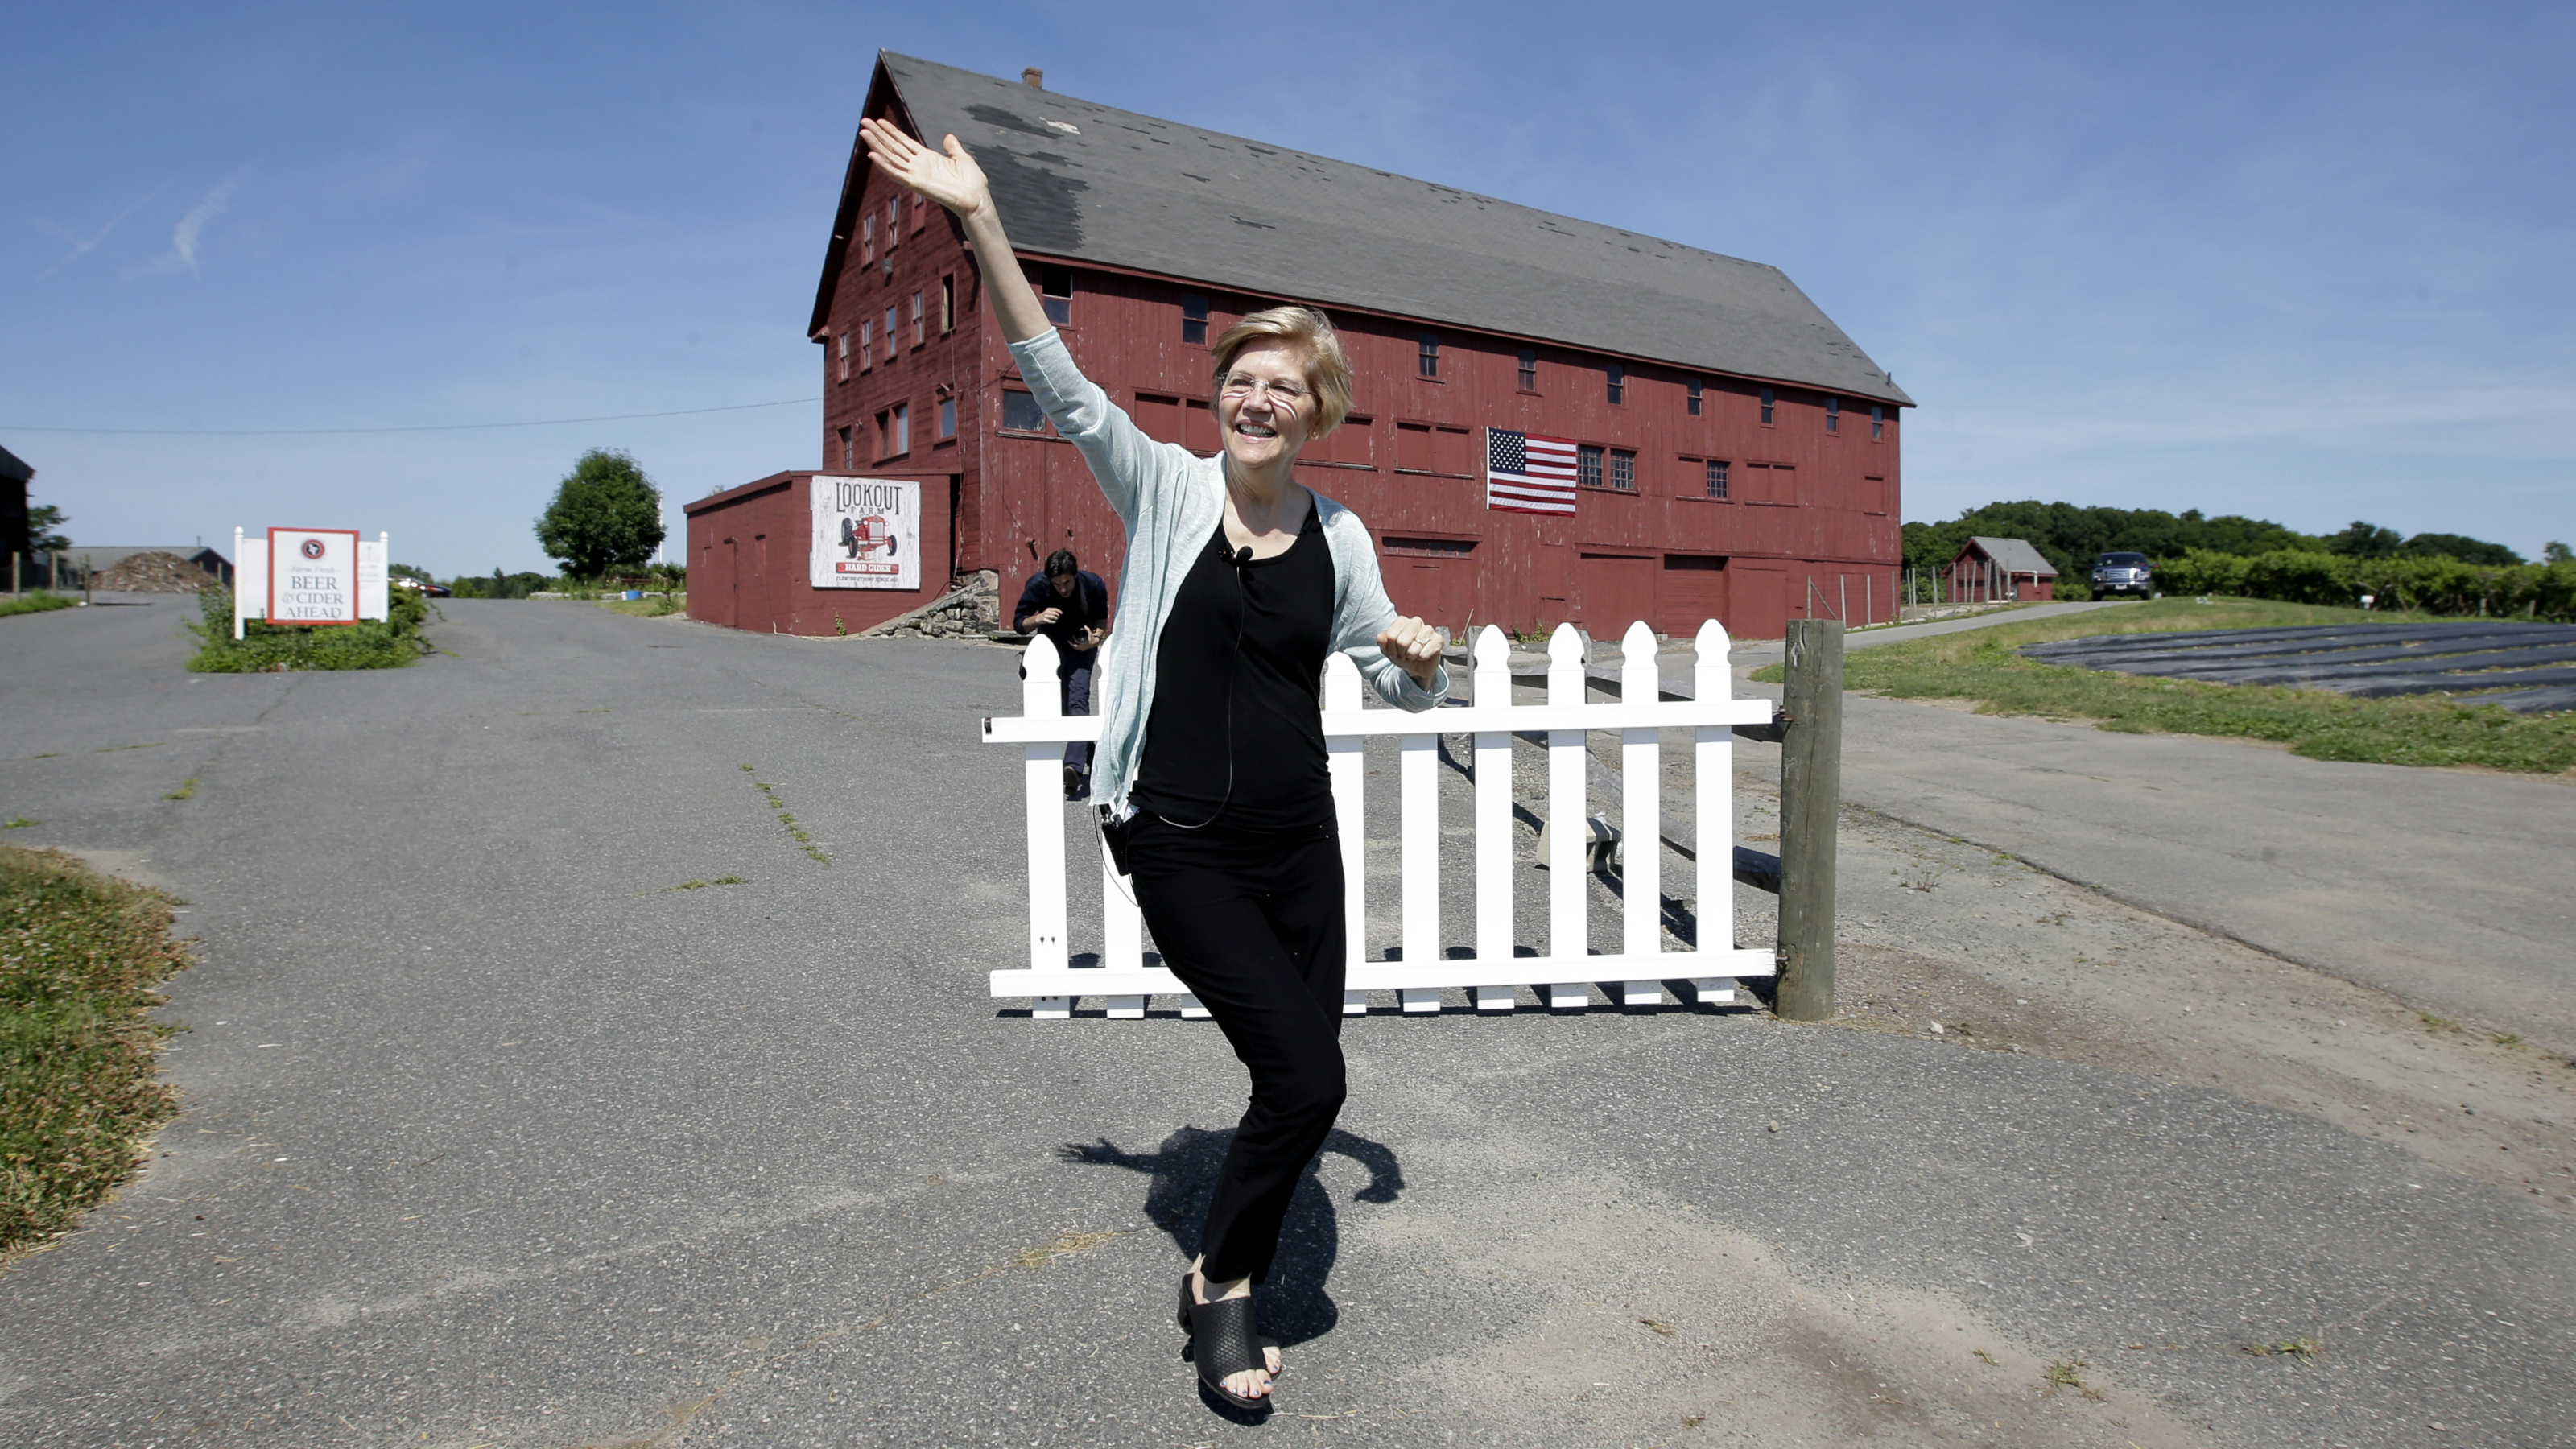 Sen. Elizabeth Warren, D-Mass., waves as she arrives at Belkin Family Lookout Farm before a town hall event, Sunday, July 8, 2018, in Natick, Mass. Warren is hosting the town hall and cookout following an Independence Day trip to visit U.S. troops in Iraq and Kuwait.